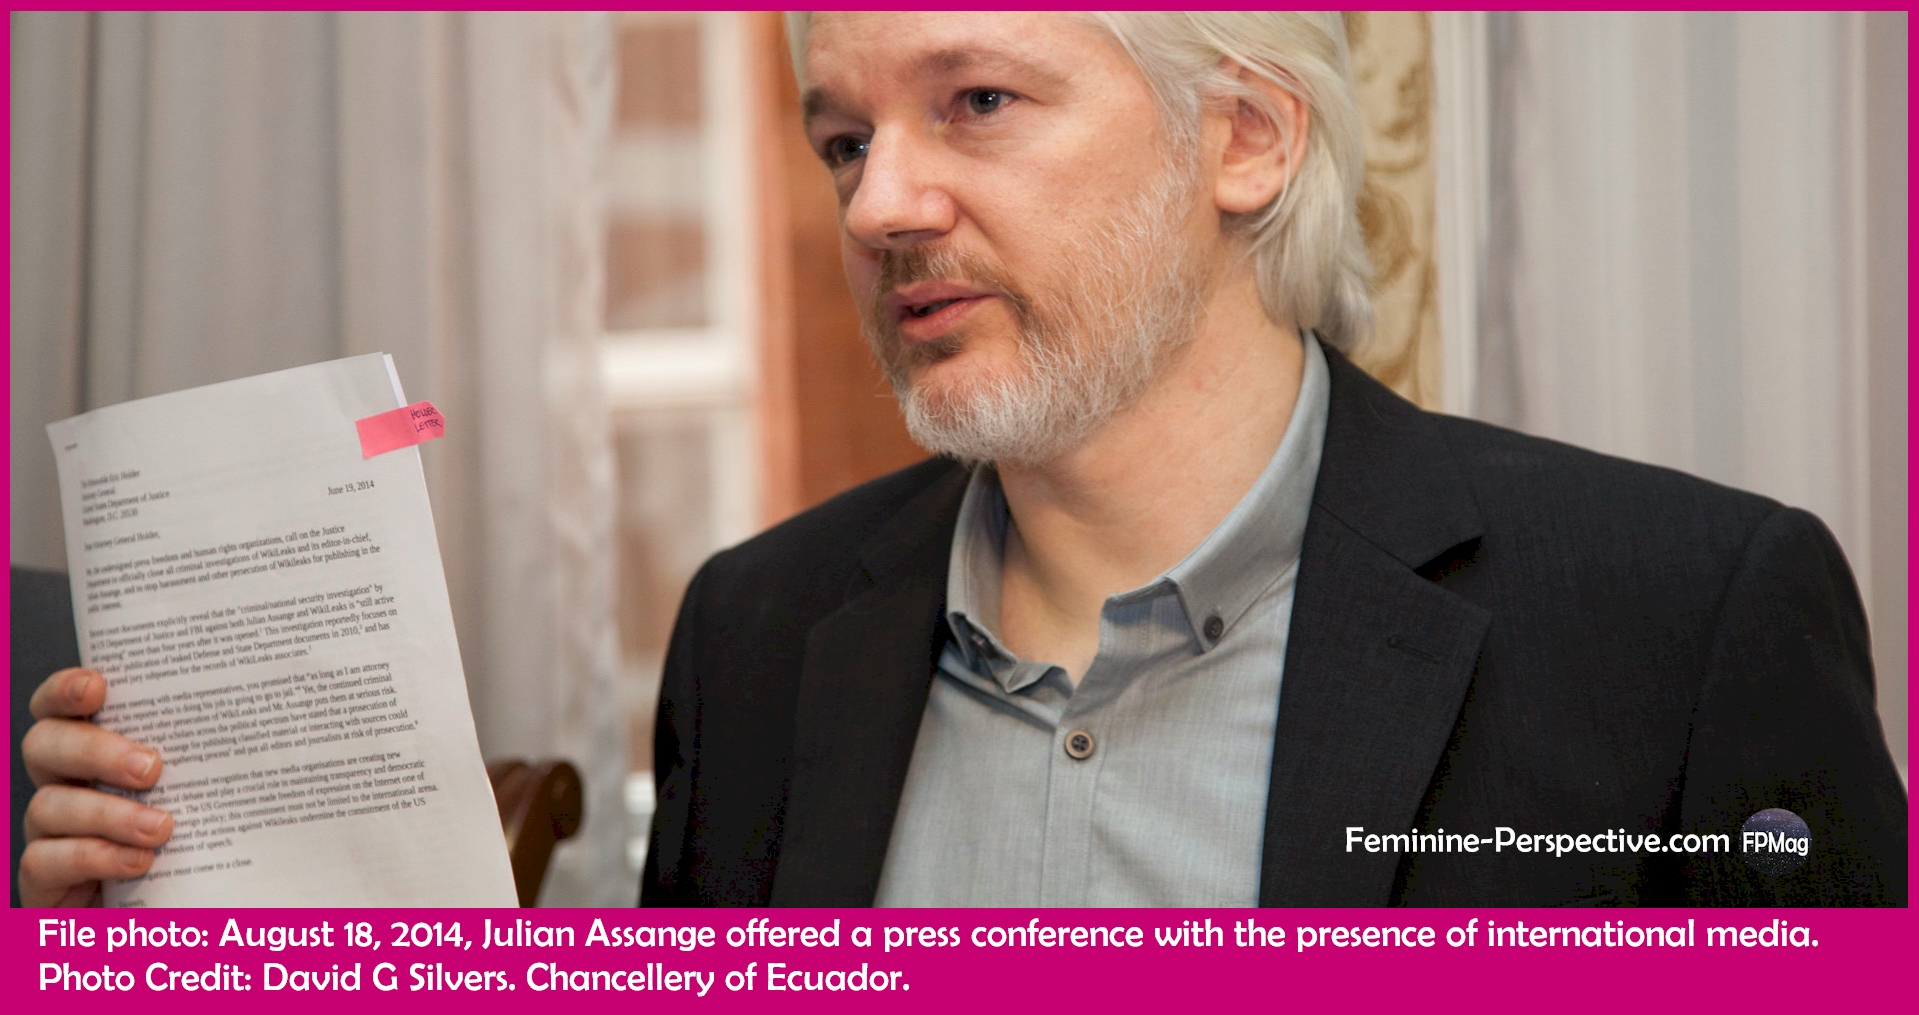 File photo: London (United Kingdom), August 18, 2014, Julian Assange offered a press conference with the presence of international media. Photo Credit: David G Silvers. Chancellery of Ecuador.